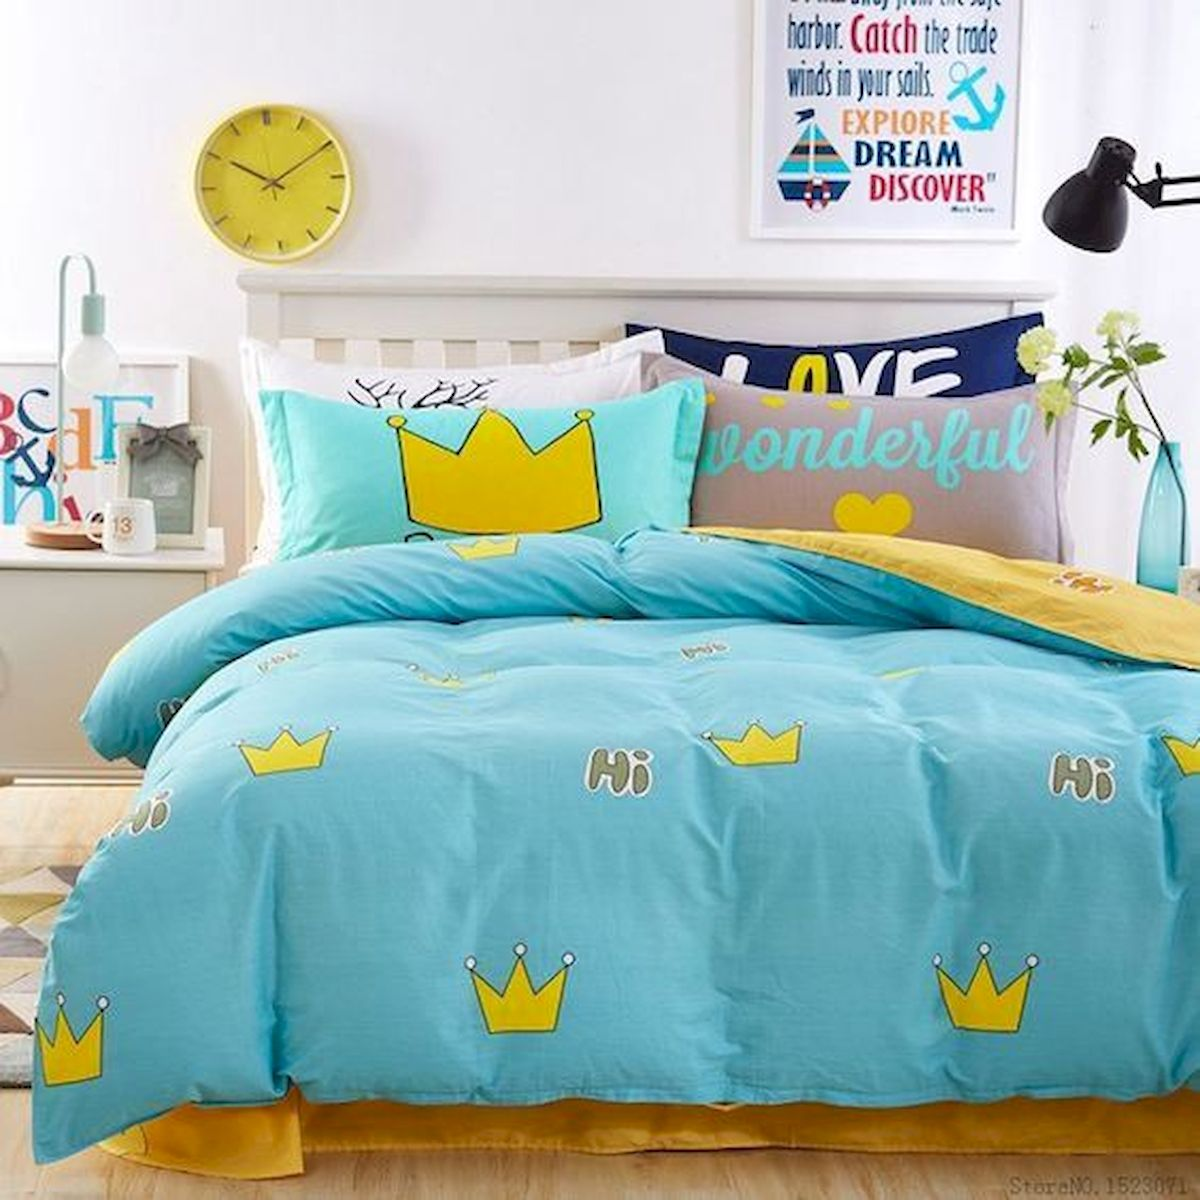 70 Awesome Colorful Bedroom Design Ideas and Remodel (60)